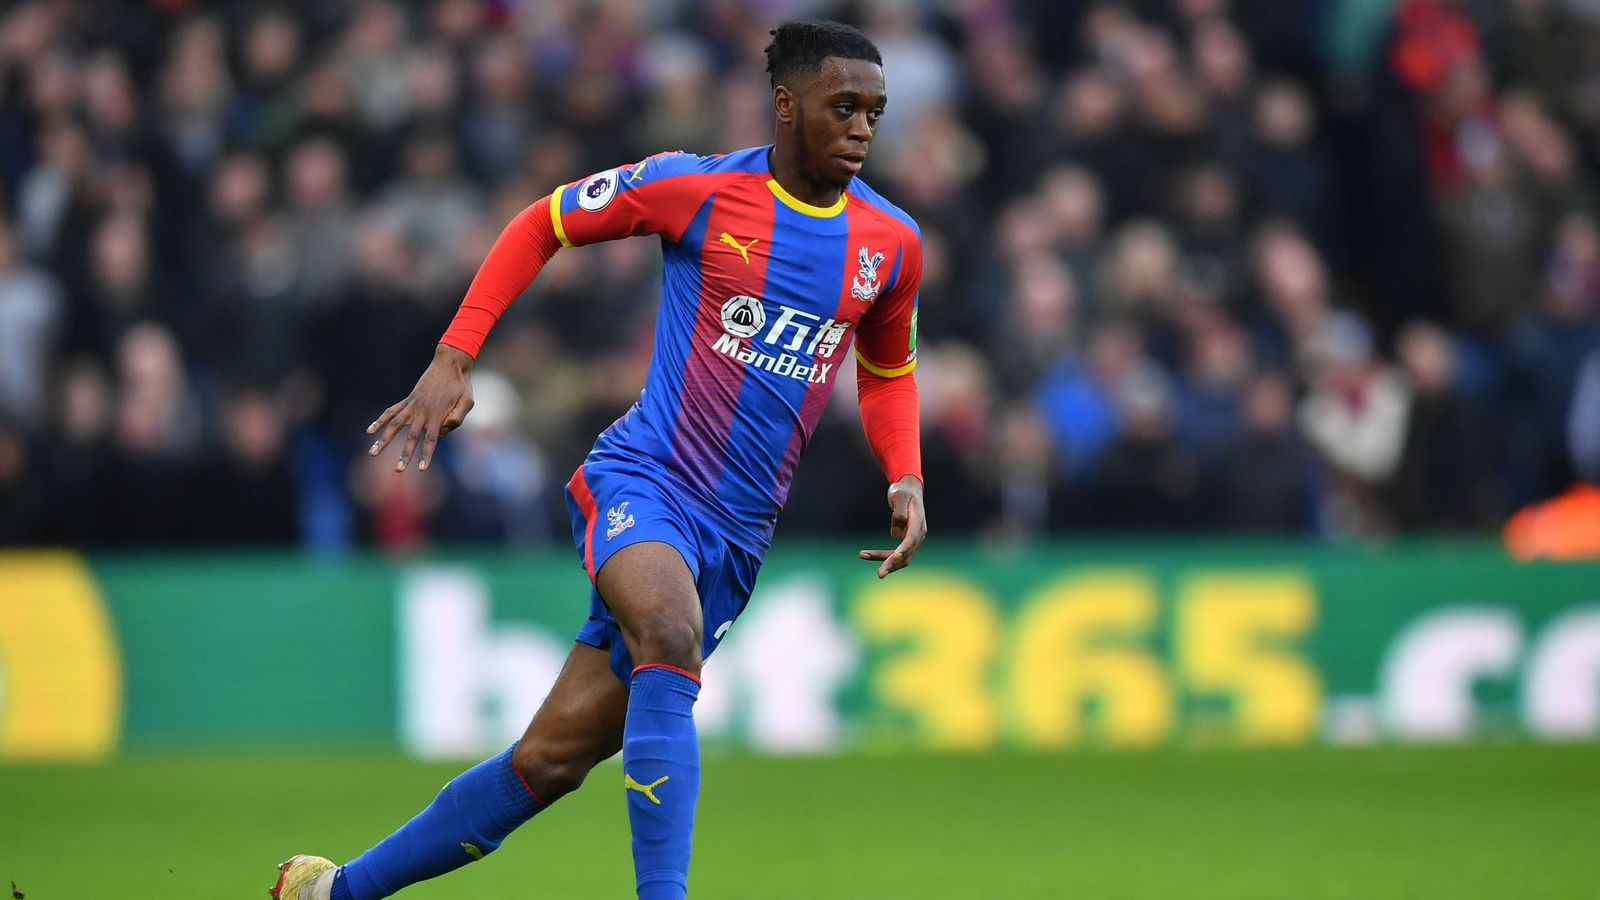 Manchester United's Aaron Wan-Bissaka talks with Crystal Palace progressing